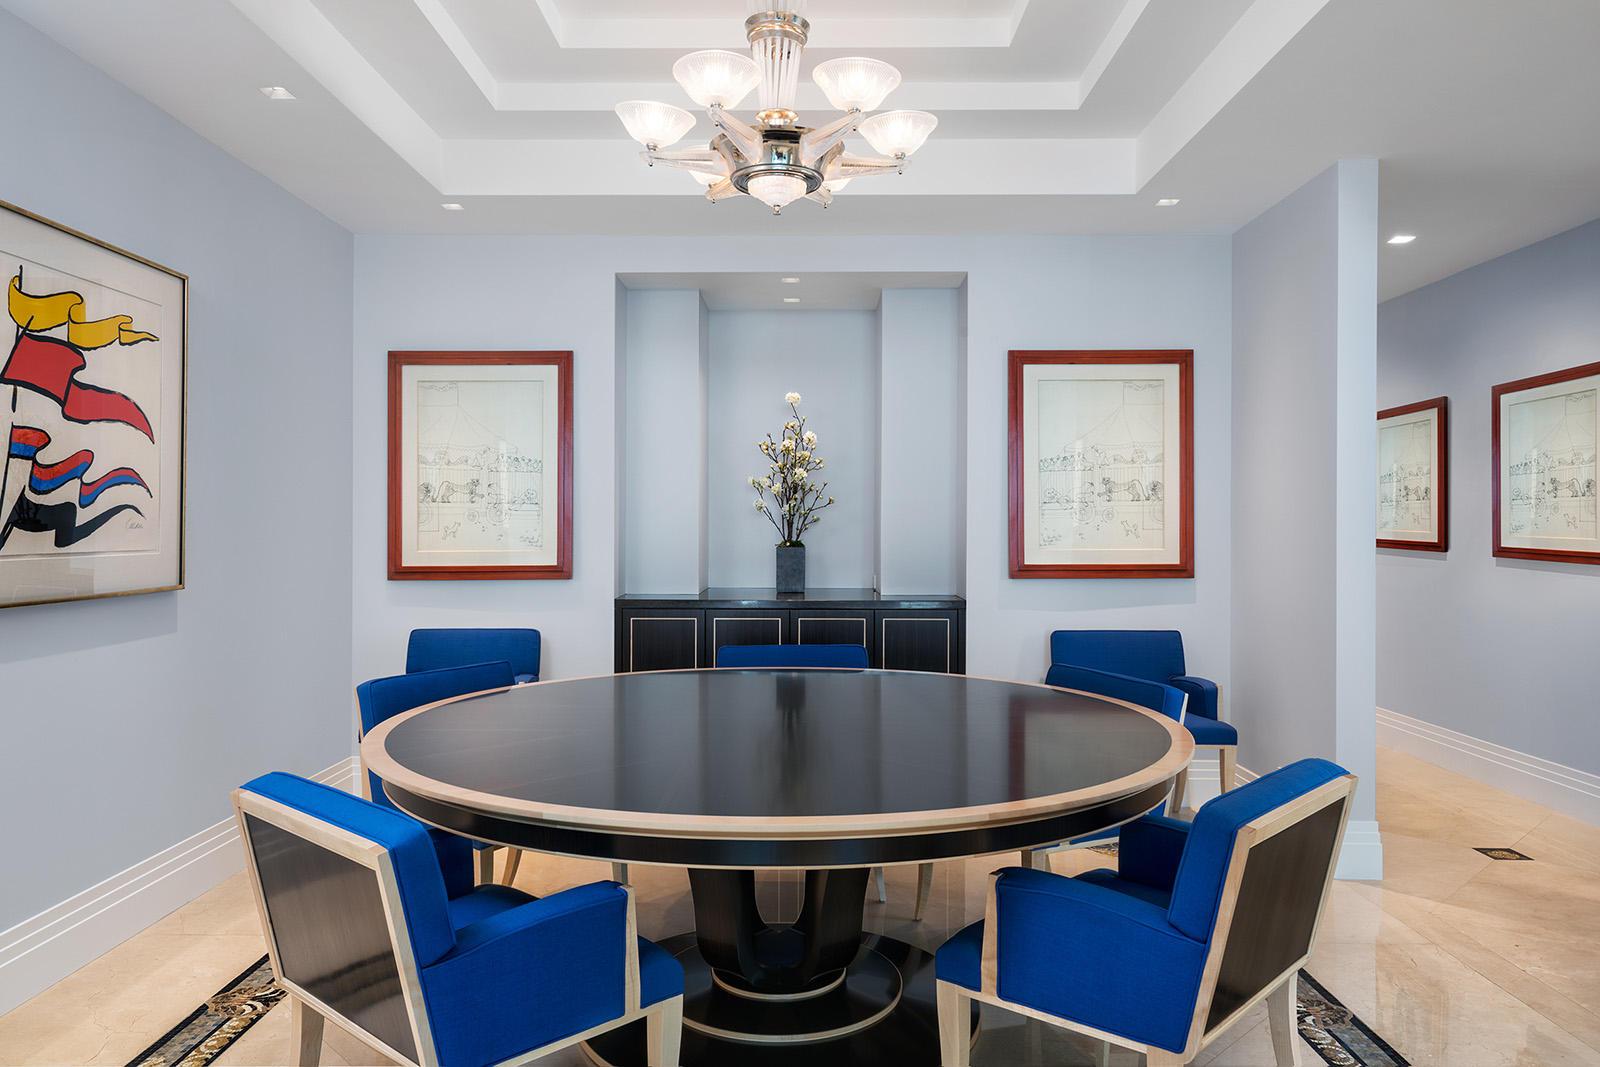 interior using custom dining table and chairs by Tim Gosling